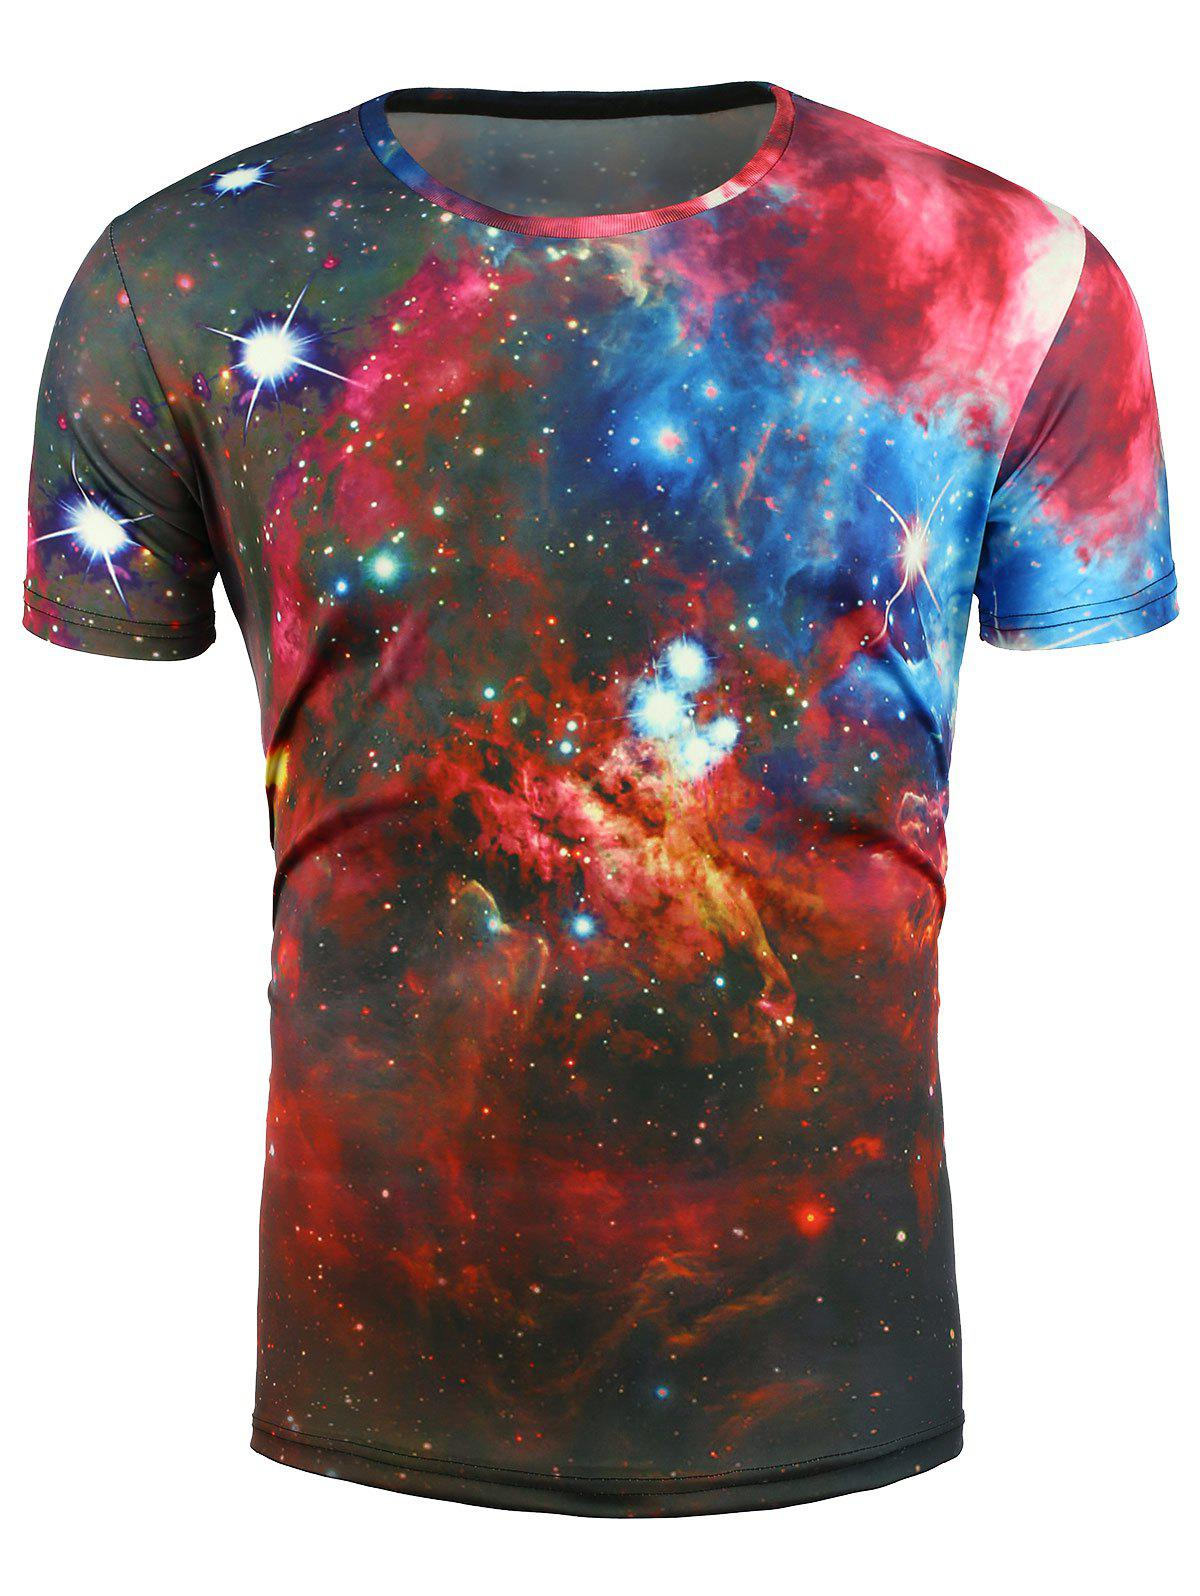 3D Colorful Print Trippy Galaxy T-Shirt 3d galaxy print crew neck trippy t shirt